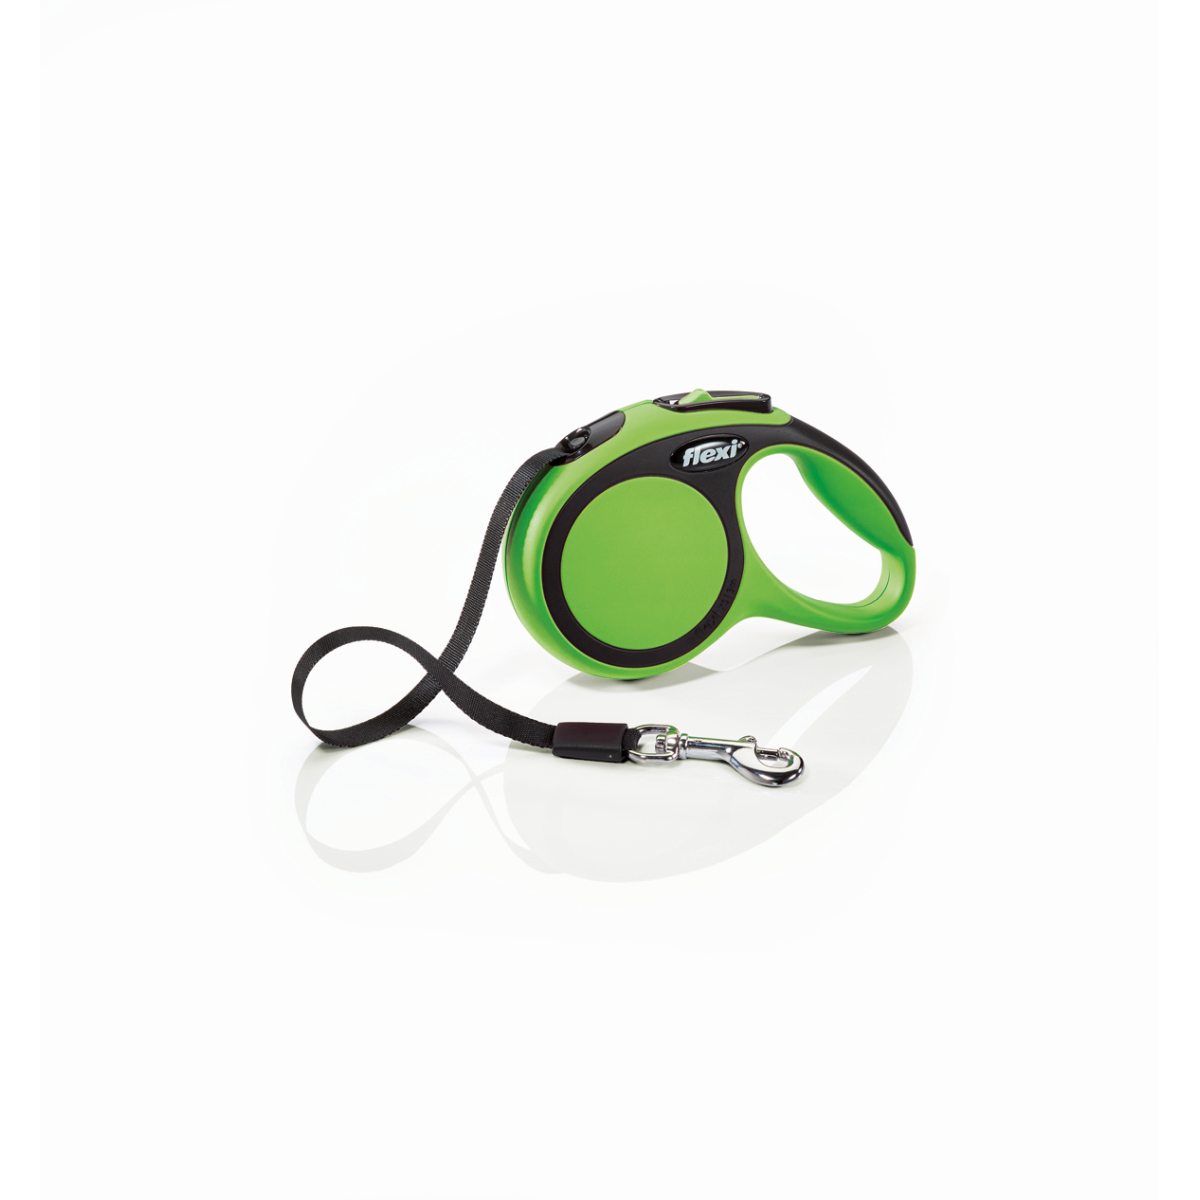 Flexi - new comfort tape xs - 3 m groen